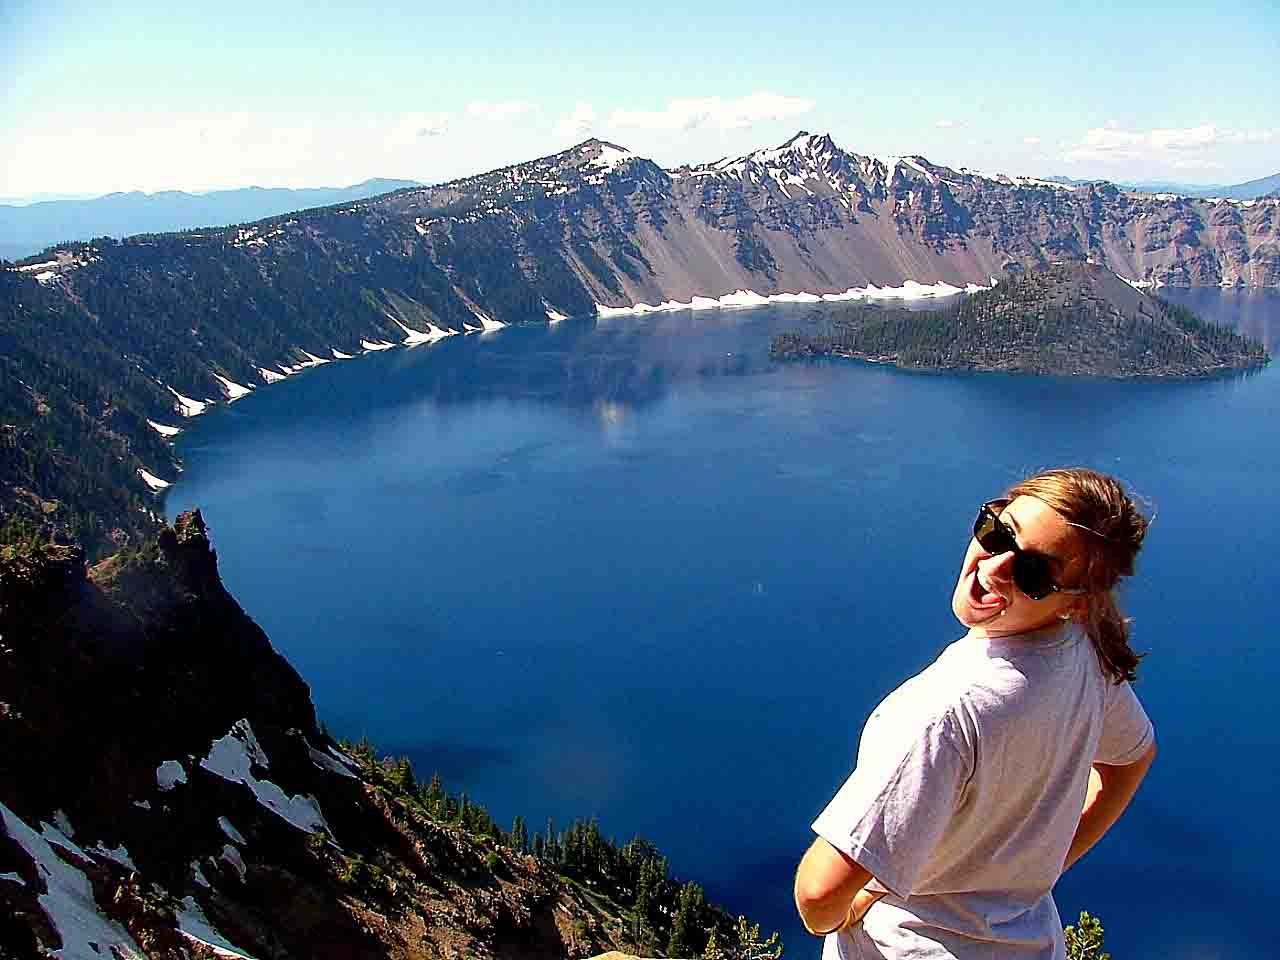 The crater lake, Oregon most interesting places to swim